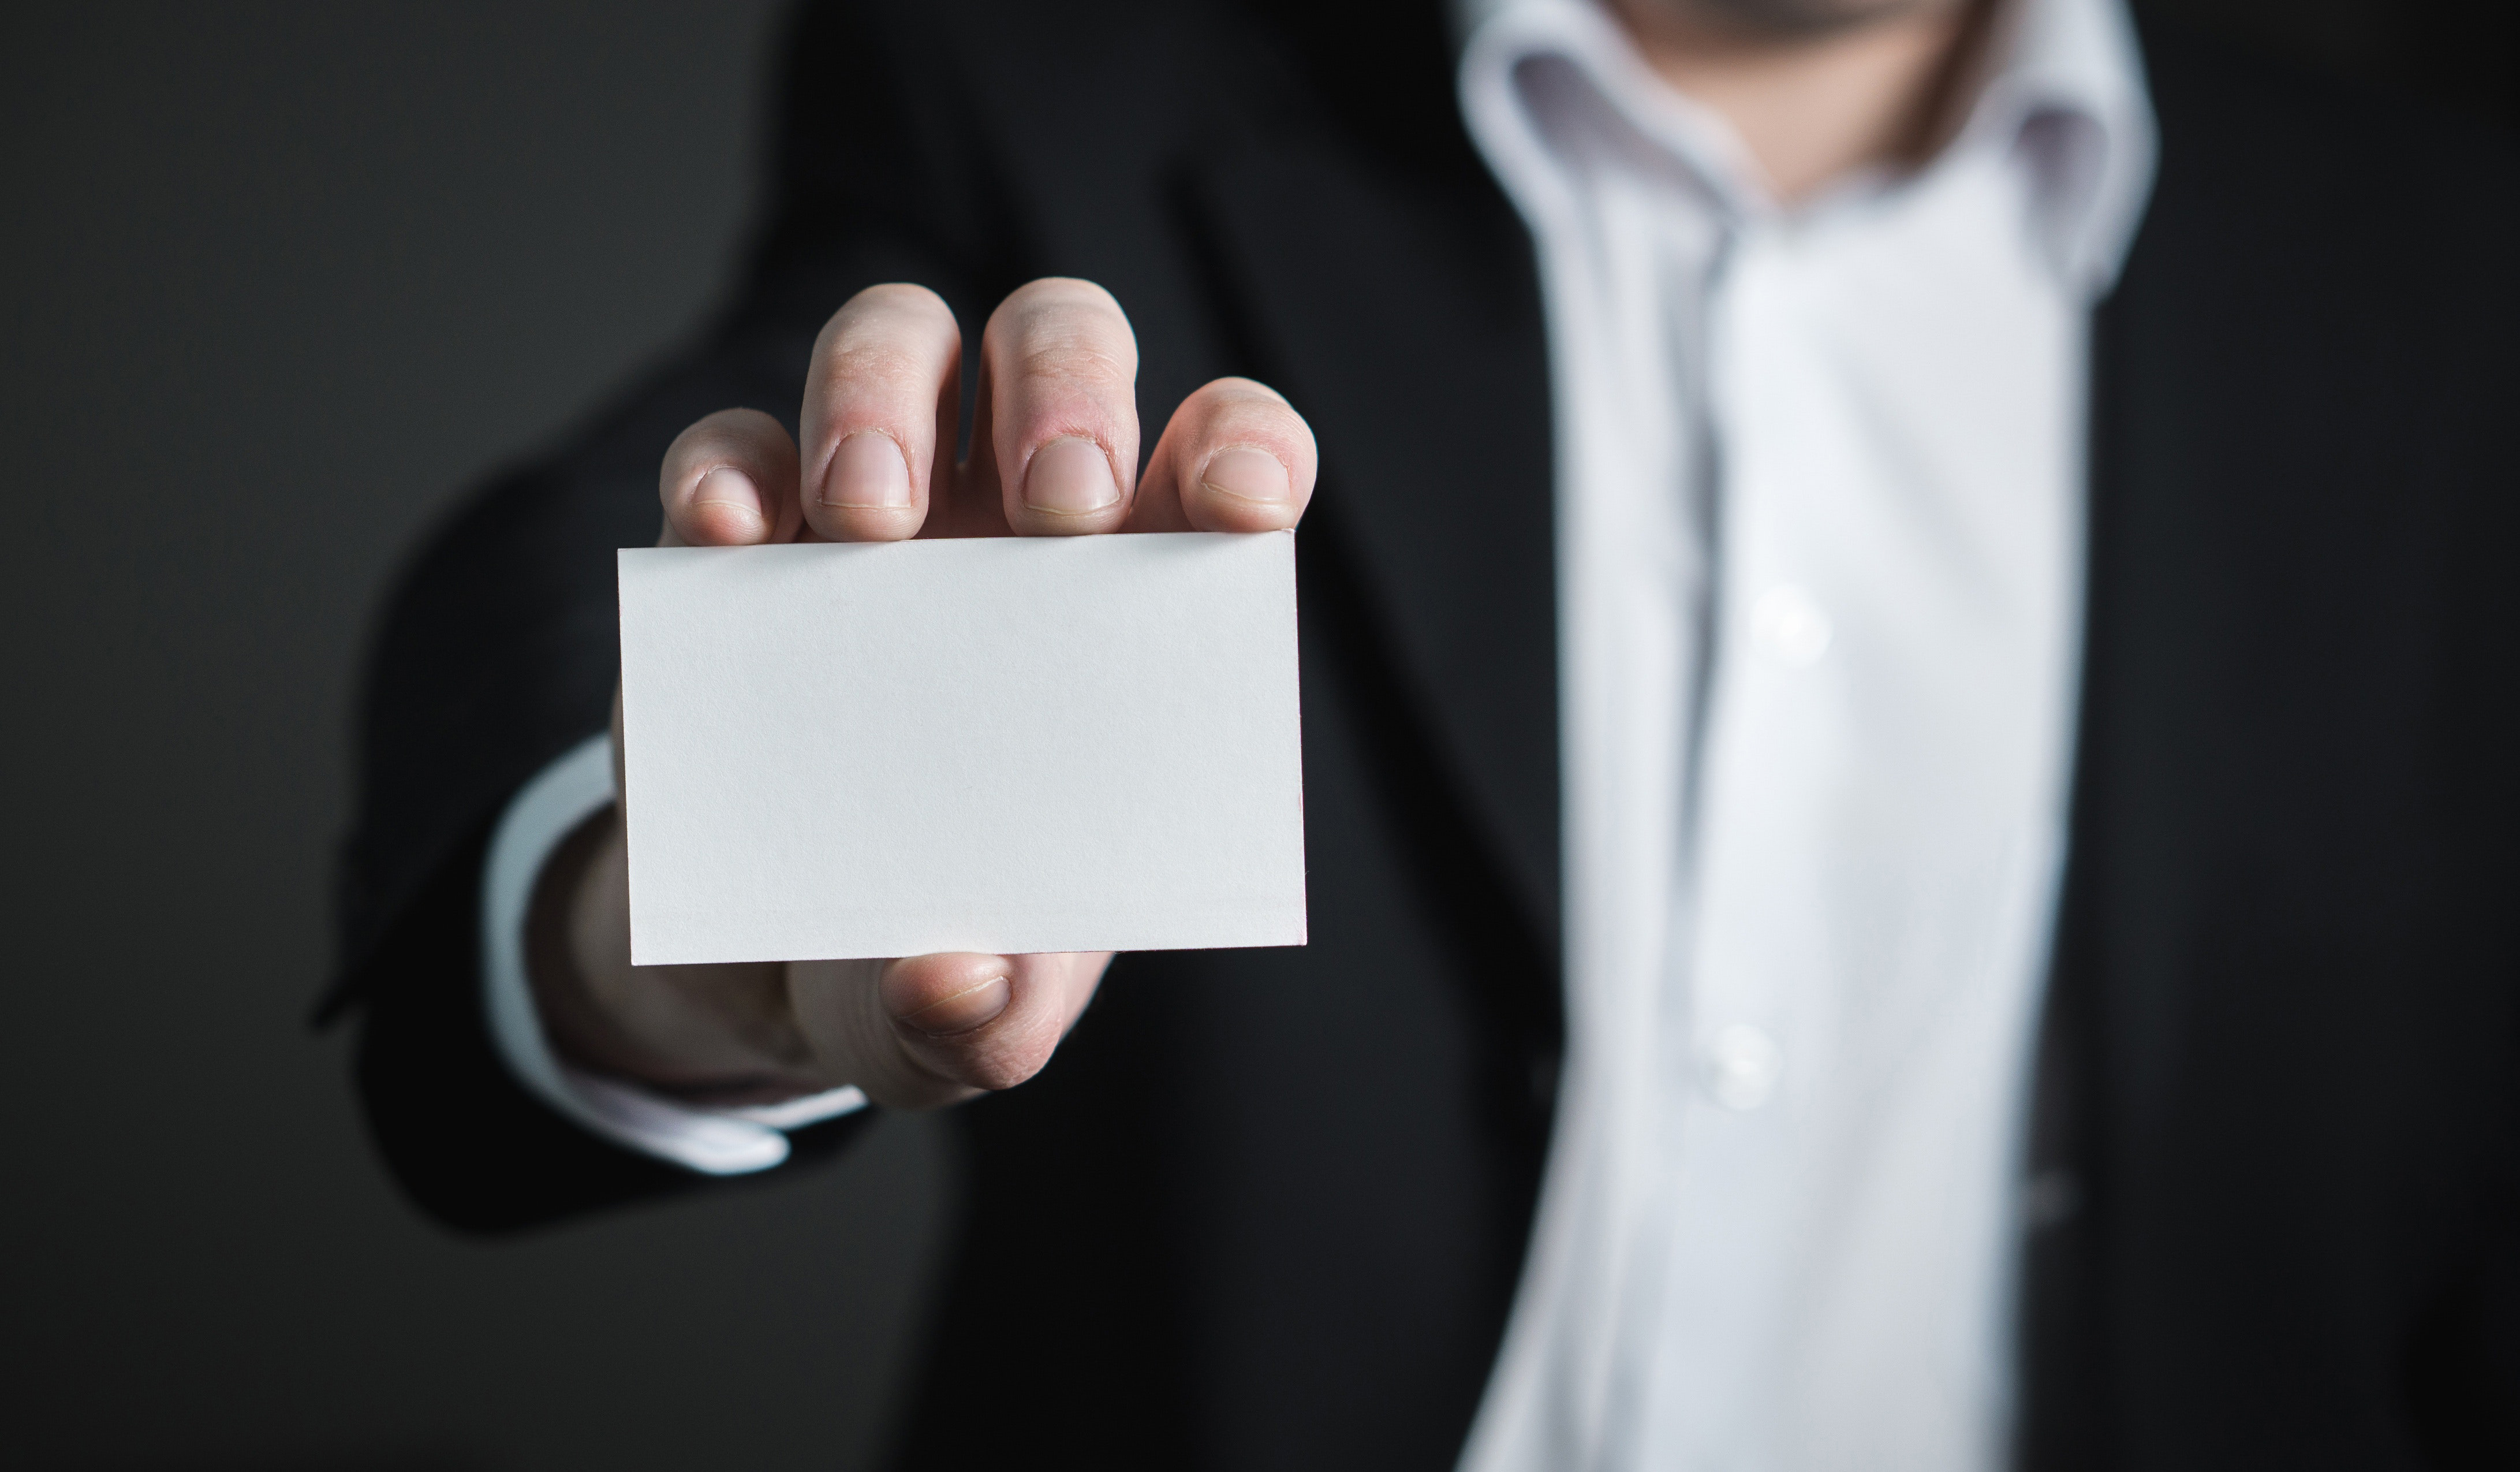 Business card, blank, office, paper, white, ,marketing